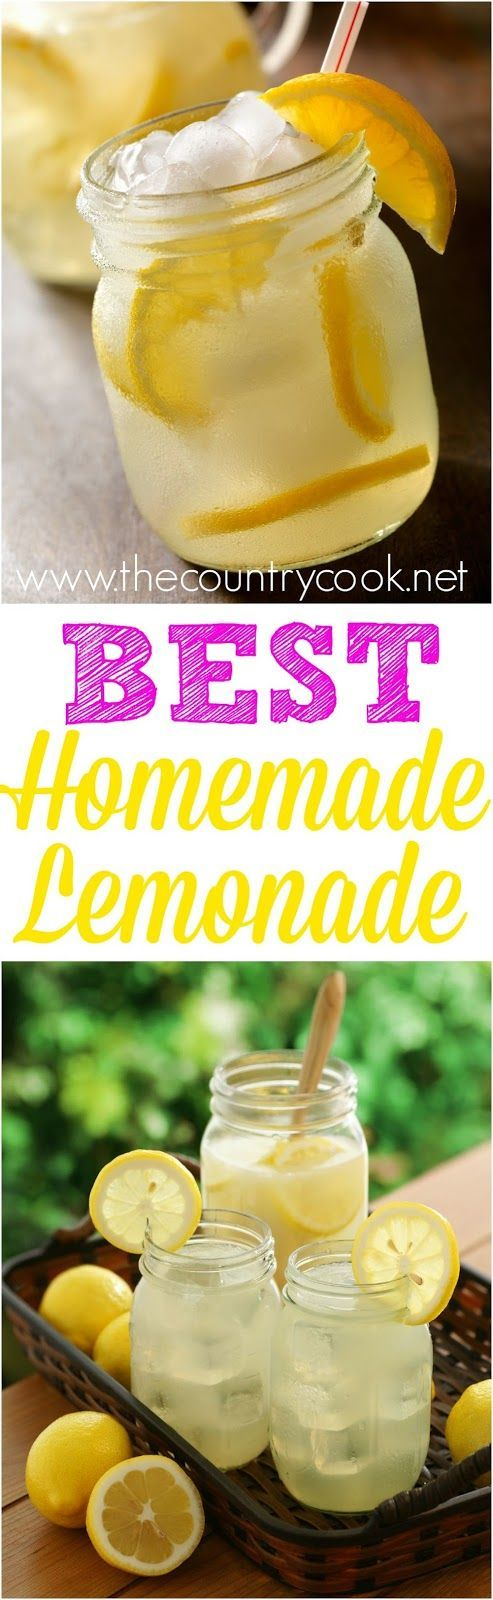 Secret Ingredient Homemade Lemonade recipe from The Country Cook. Really, the best!